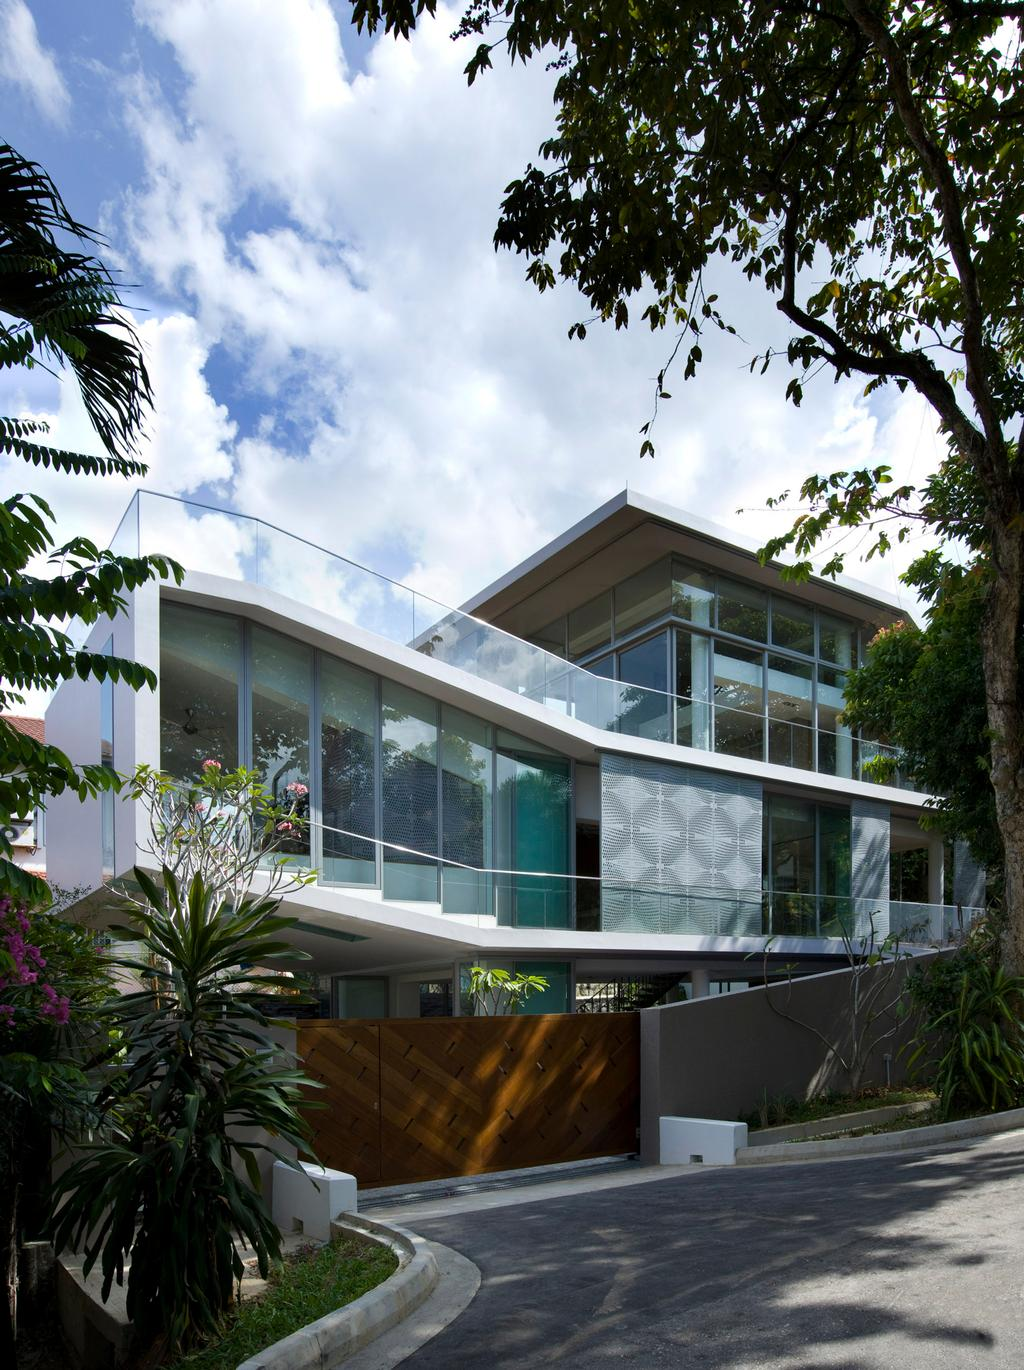 Contemporary, Landed, Ooi House, Architect, Czarl Architects, Exterior, Flora, Jar, Plant, Potted Plant, Pottery, Vase, Building, House, Housing, Villa, Garden, Gardening, Outdoors